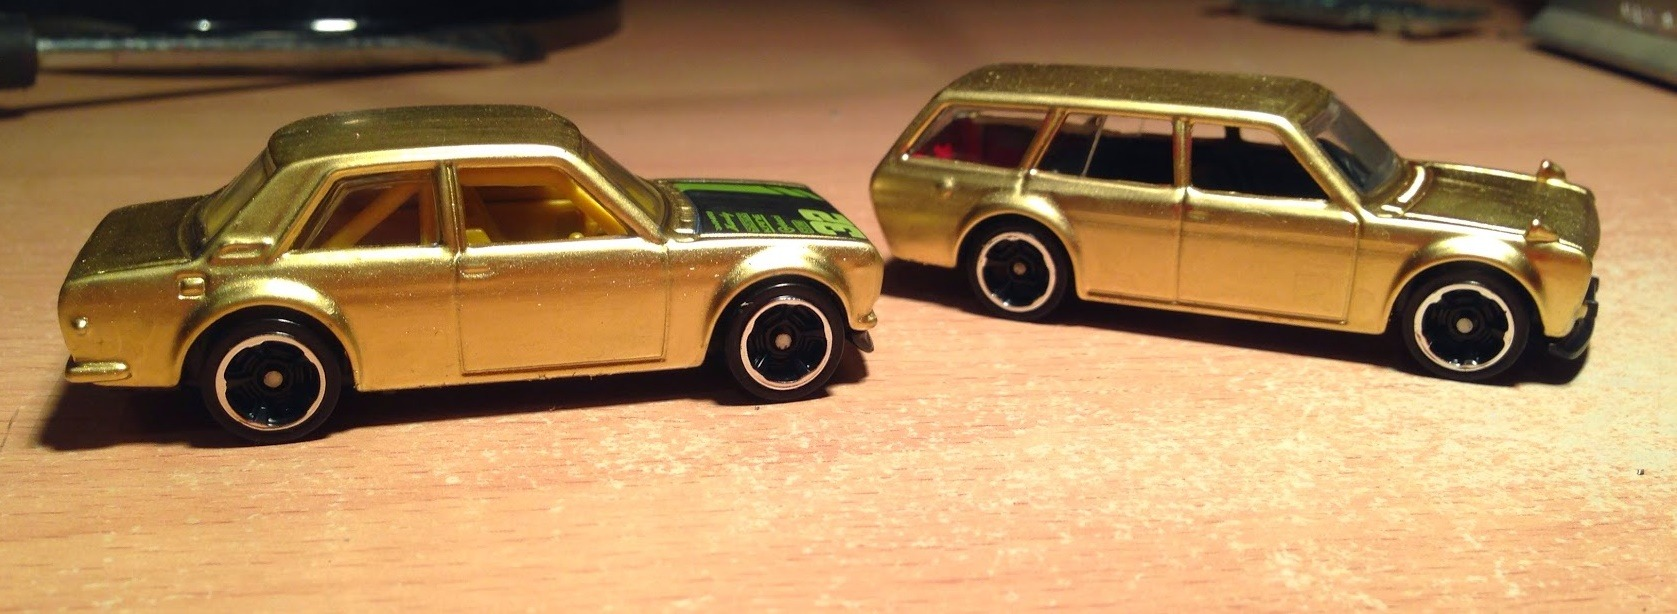 Striking Gold With The Datsun 510